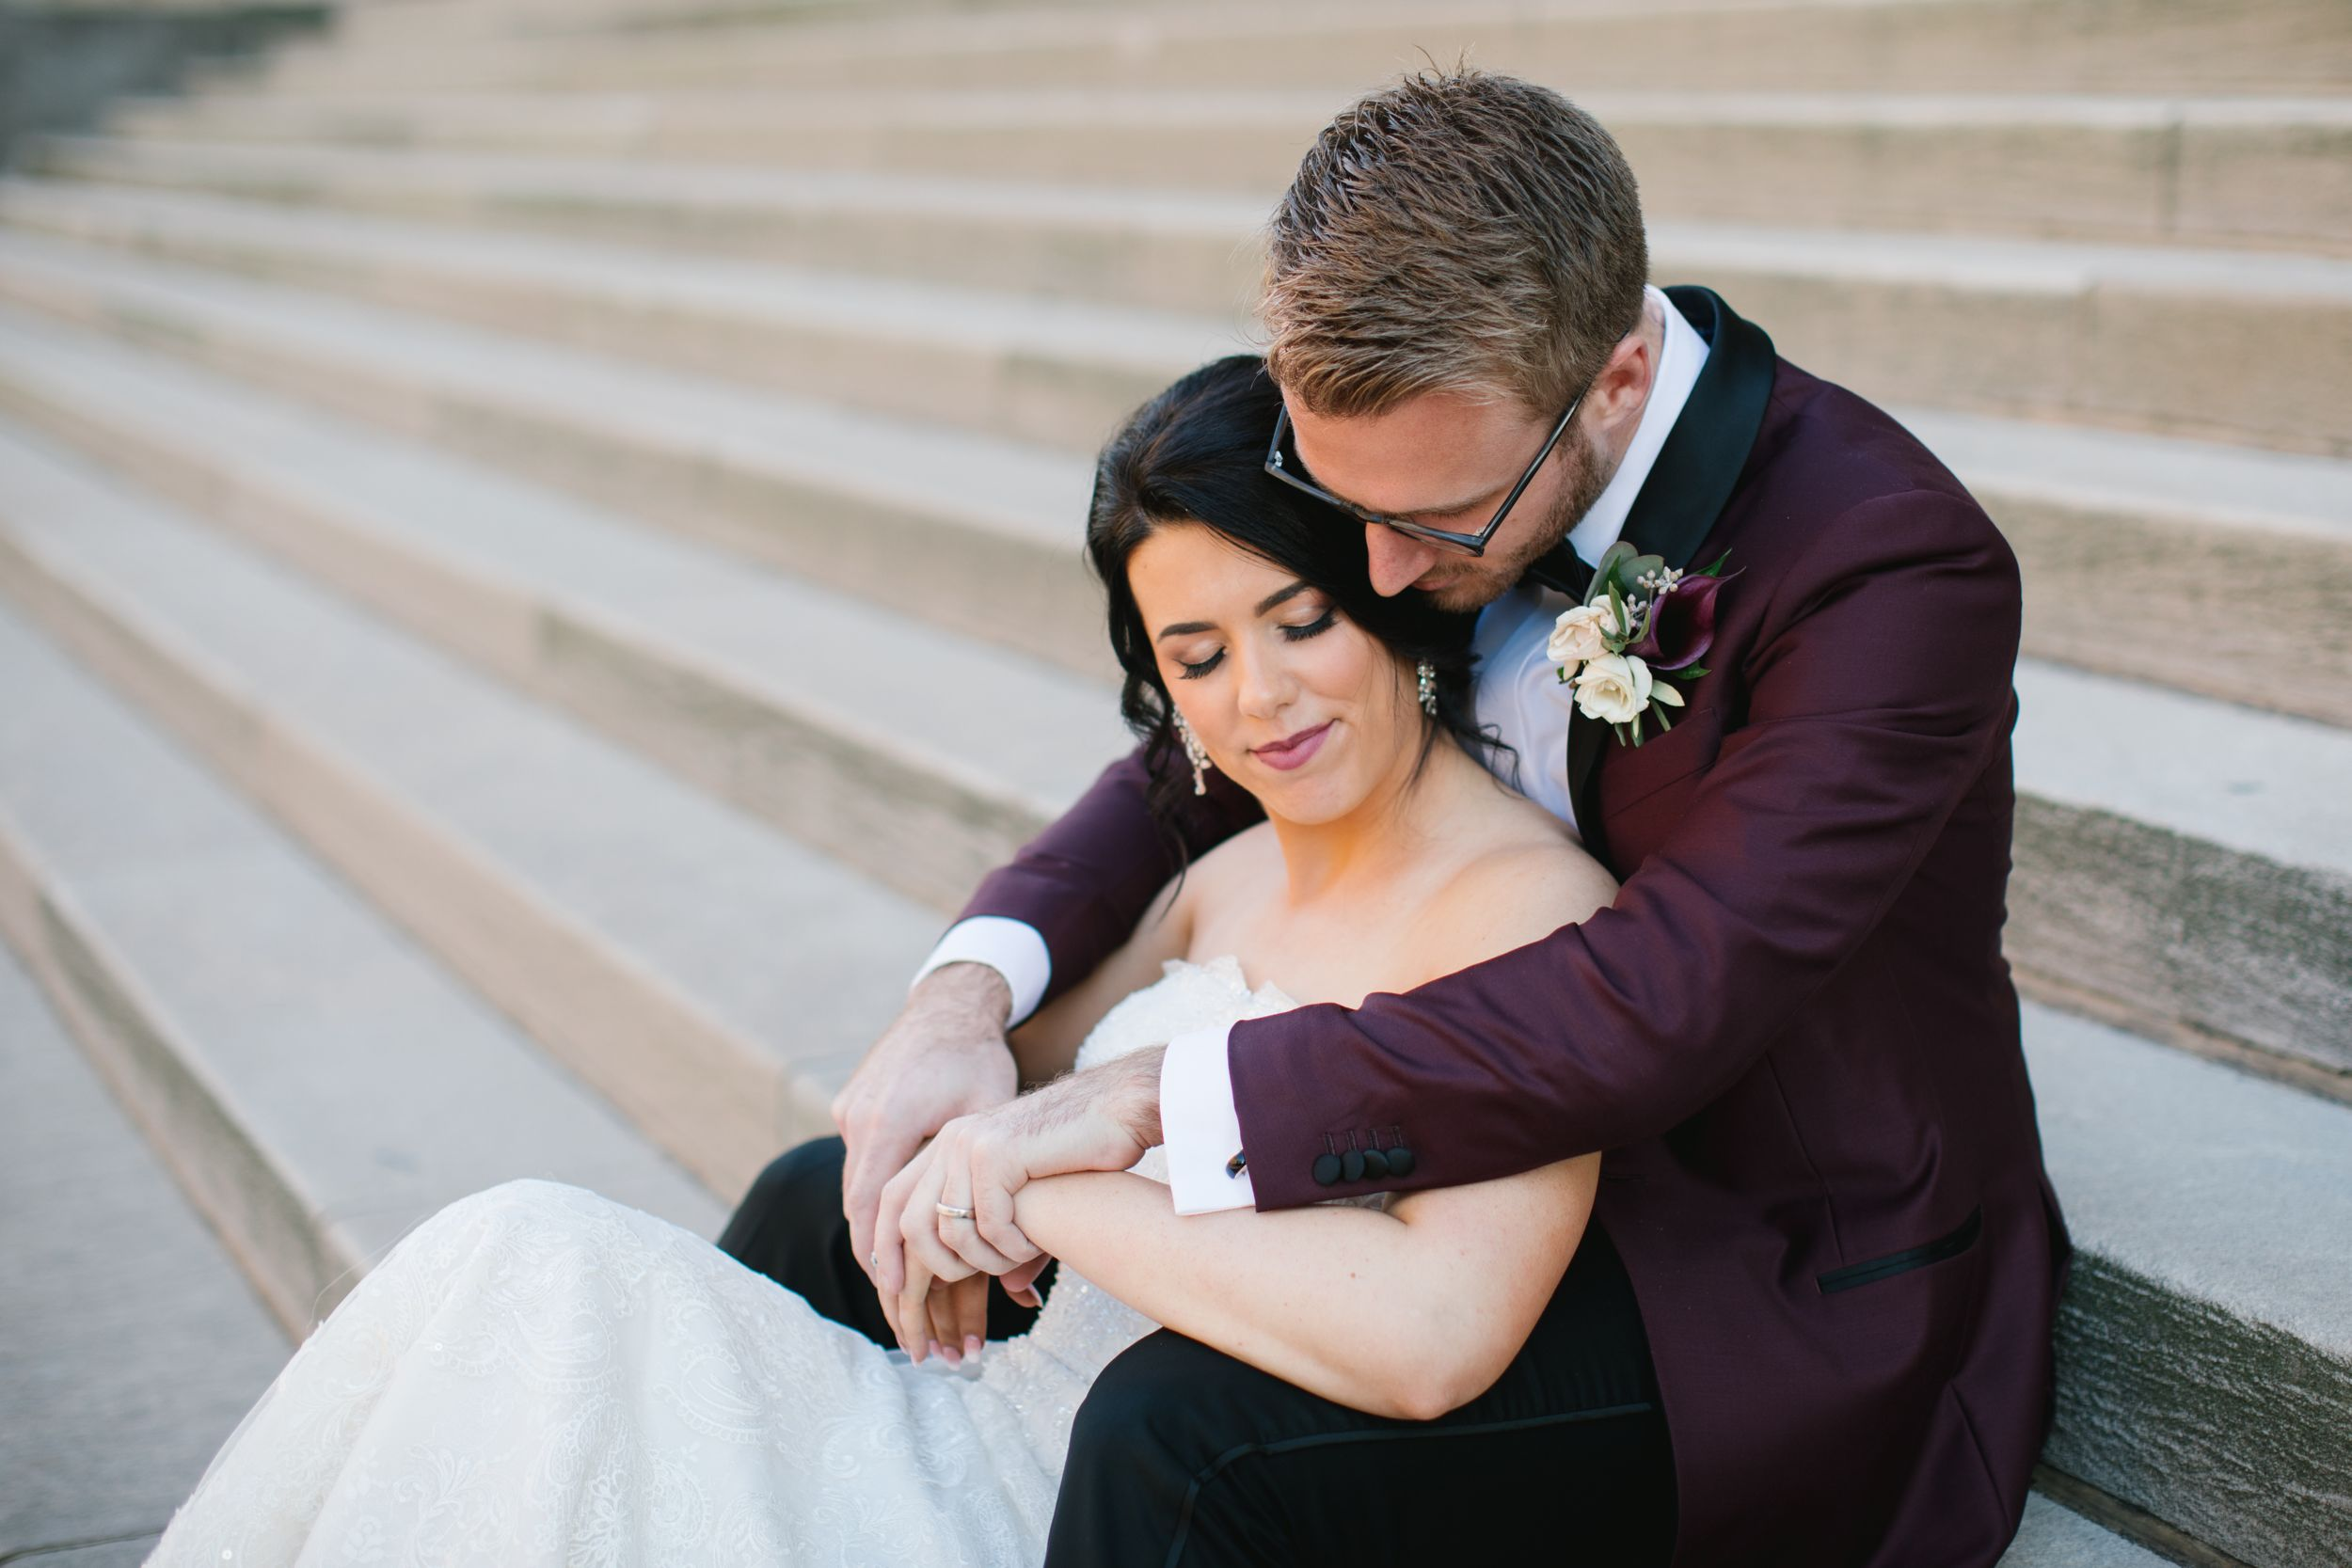 bride and groom hugging and sitting on concrete steps